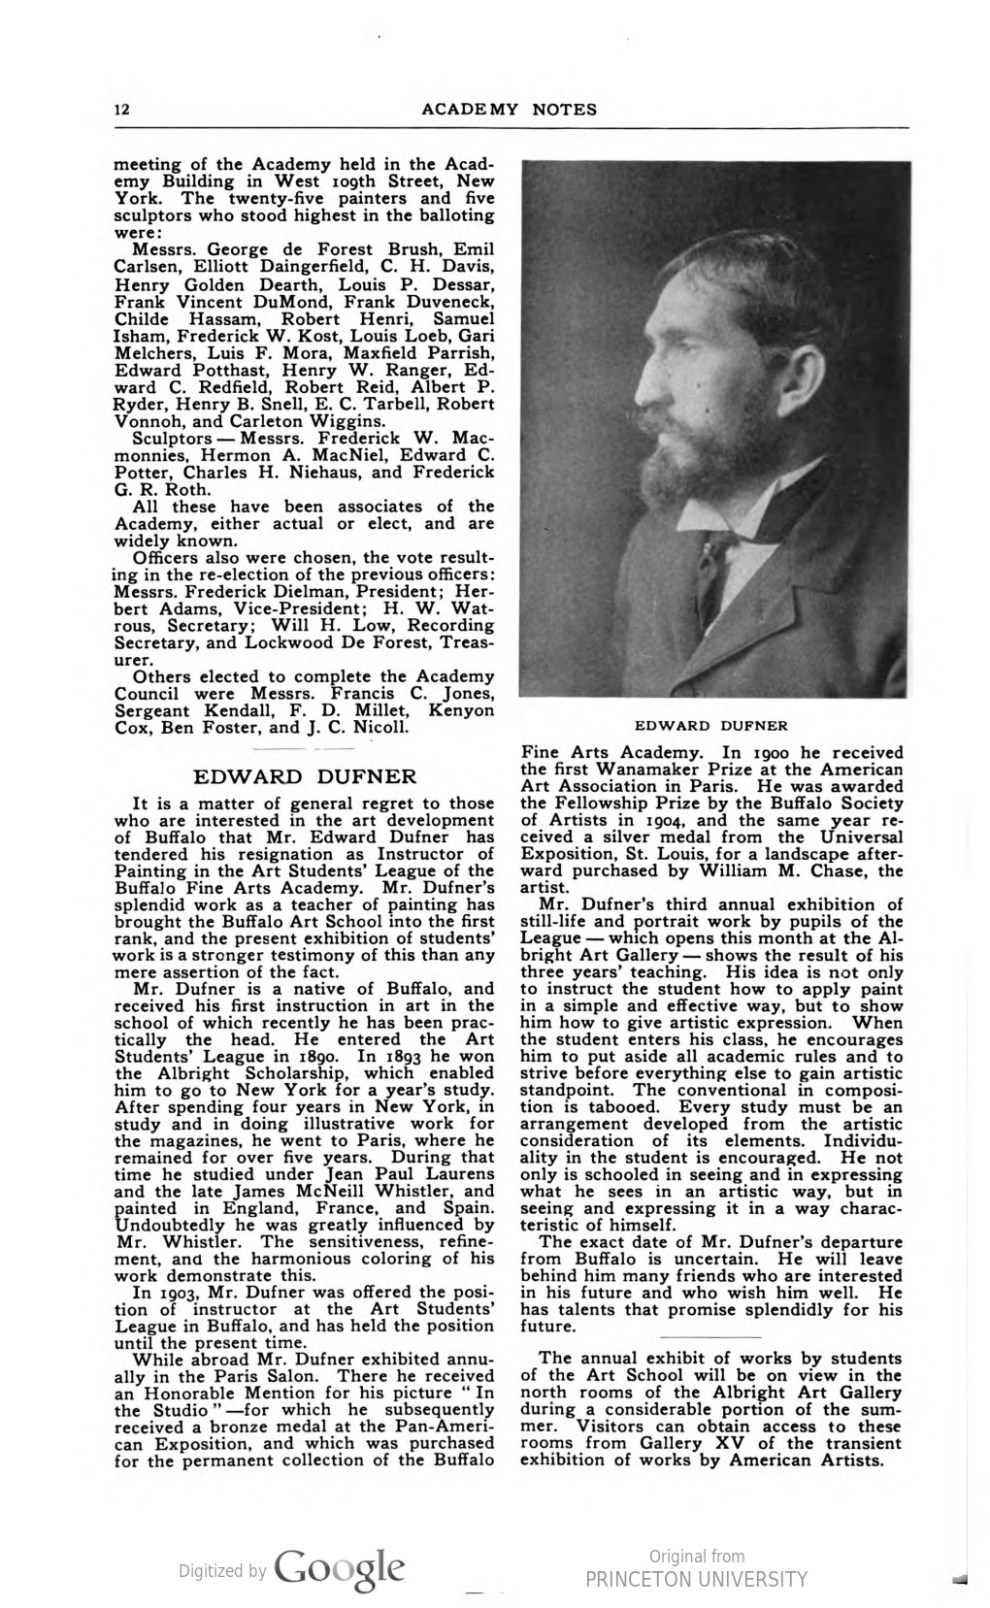 """Academy Notes, Buffalo Fine Arts Academy, Albright Art Gallery, Buffalo, NY, """"New Academicians First Election Since The Union of the National Academy and Society of American Artists"""", June, 1906, Volume 2, Number 1, page 11-12, not illustrated"""